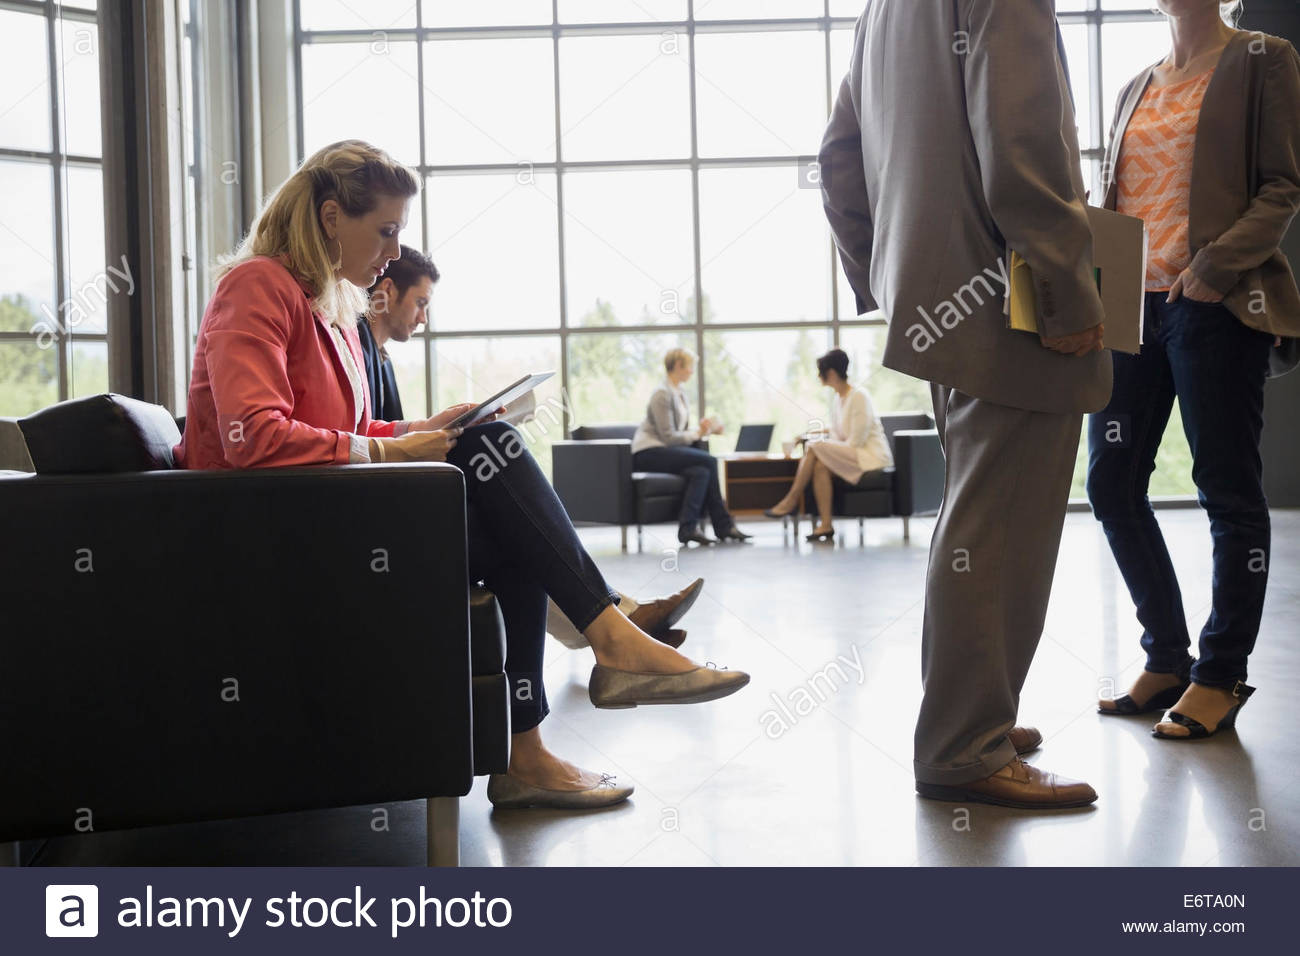 Business woman using digital tablet in office lobby Stock Photo